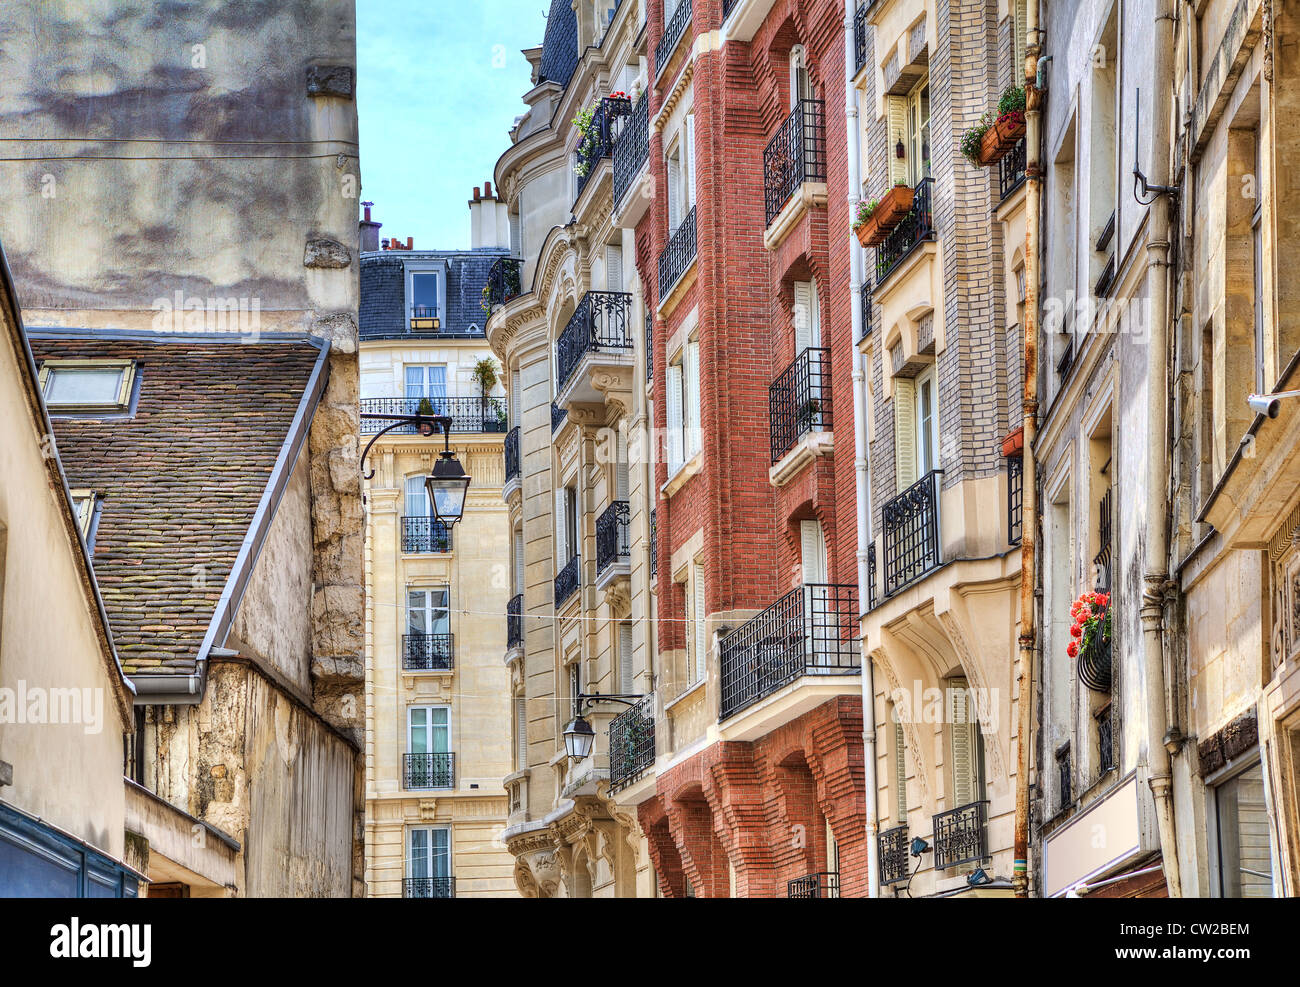 Traditional parisian residential buildings. Paris, France. - Stock Image